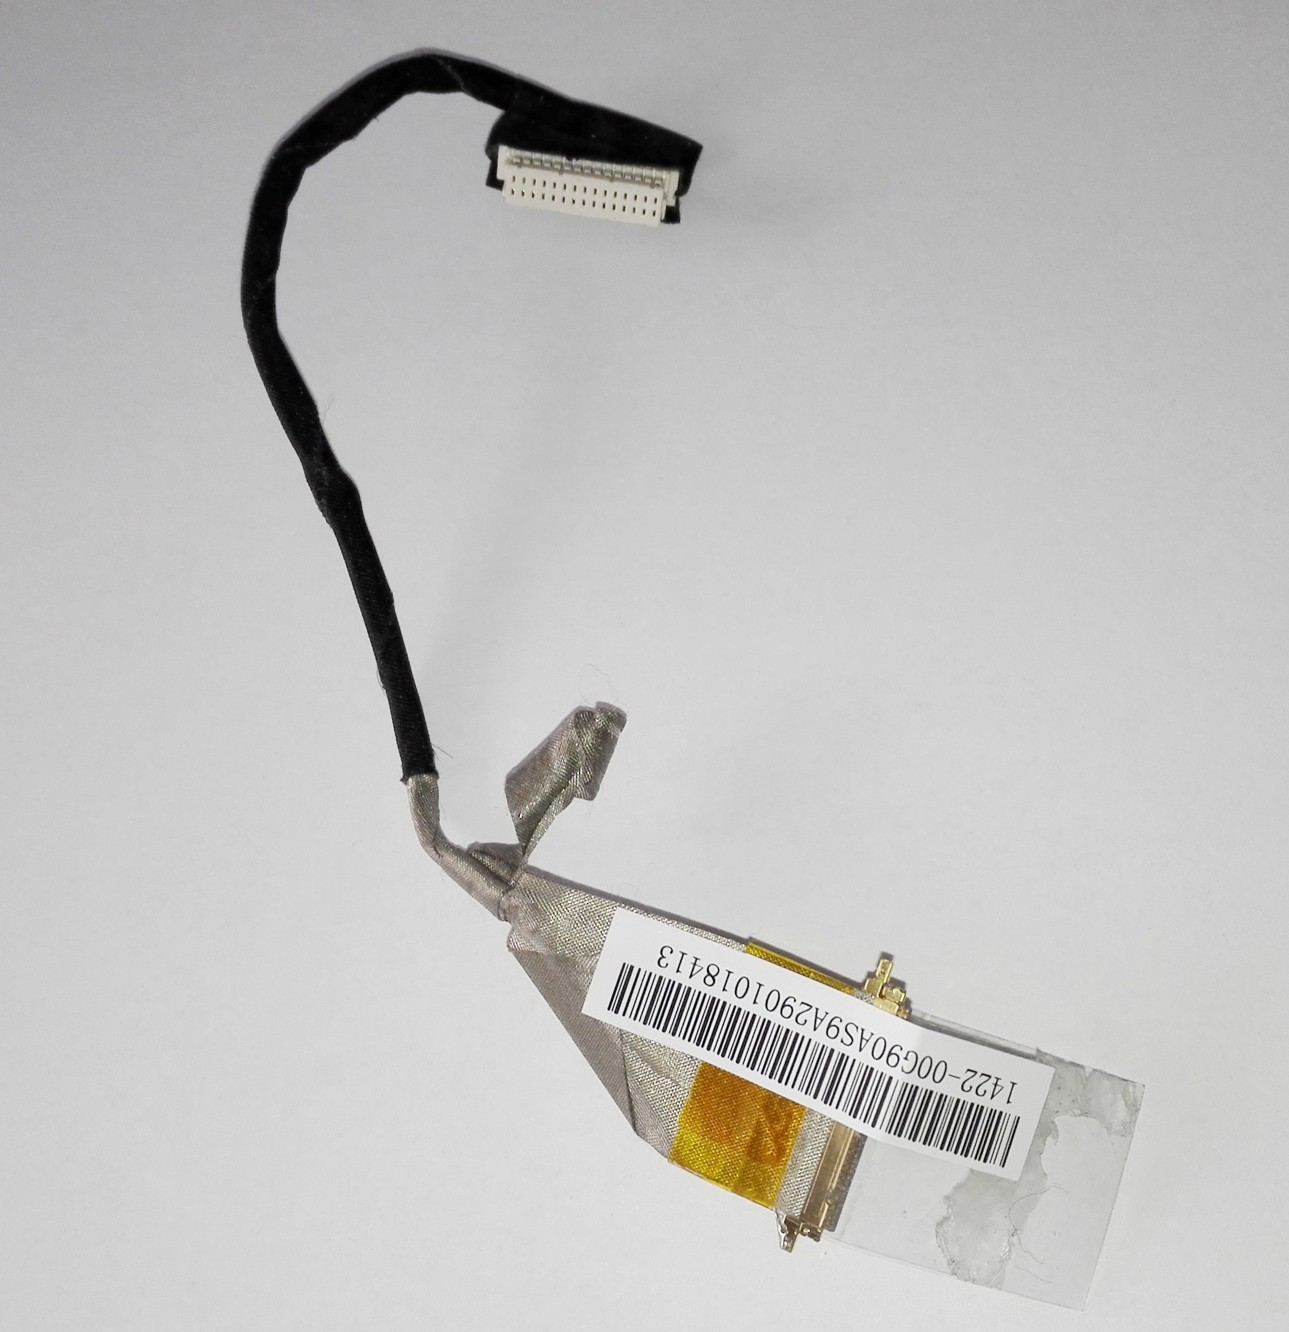 LCD Flex kabel Asus K40 1422-00G90AS9